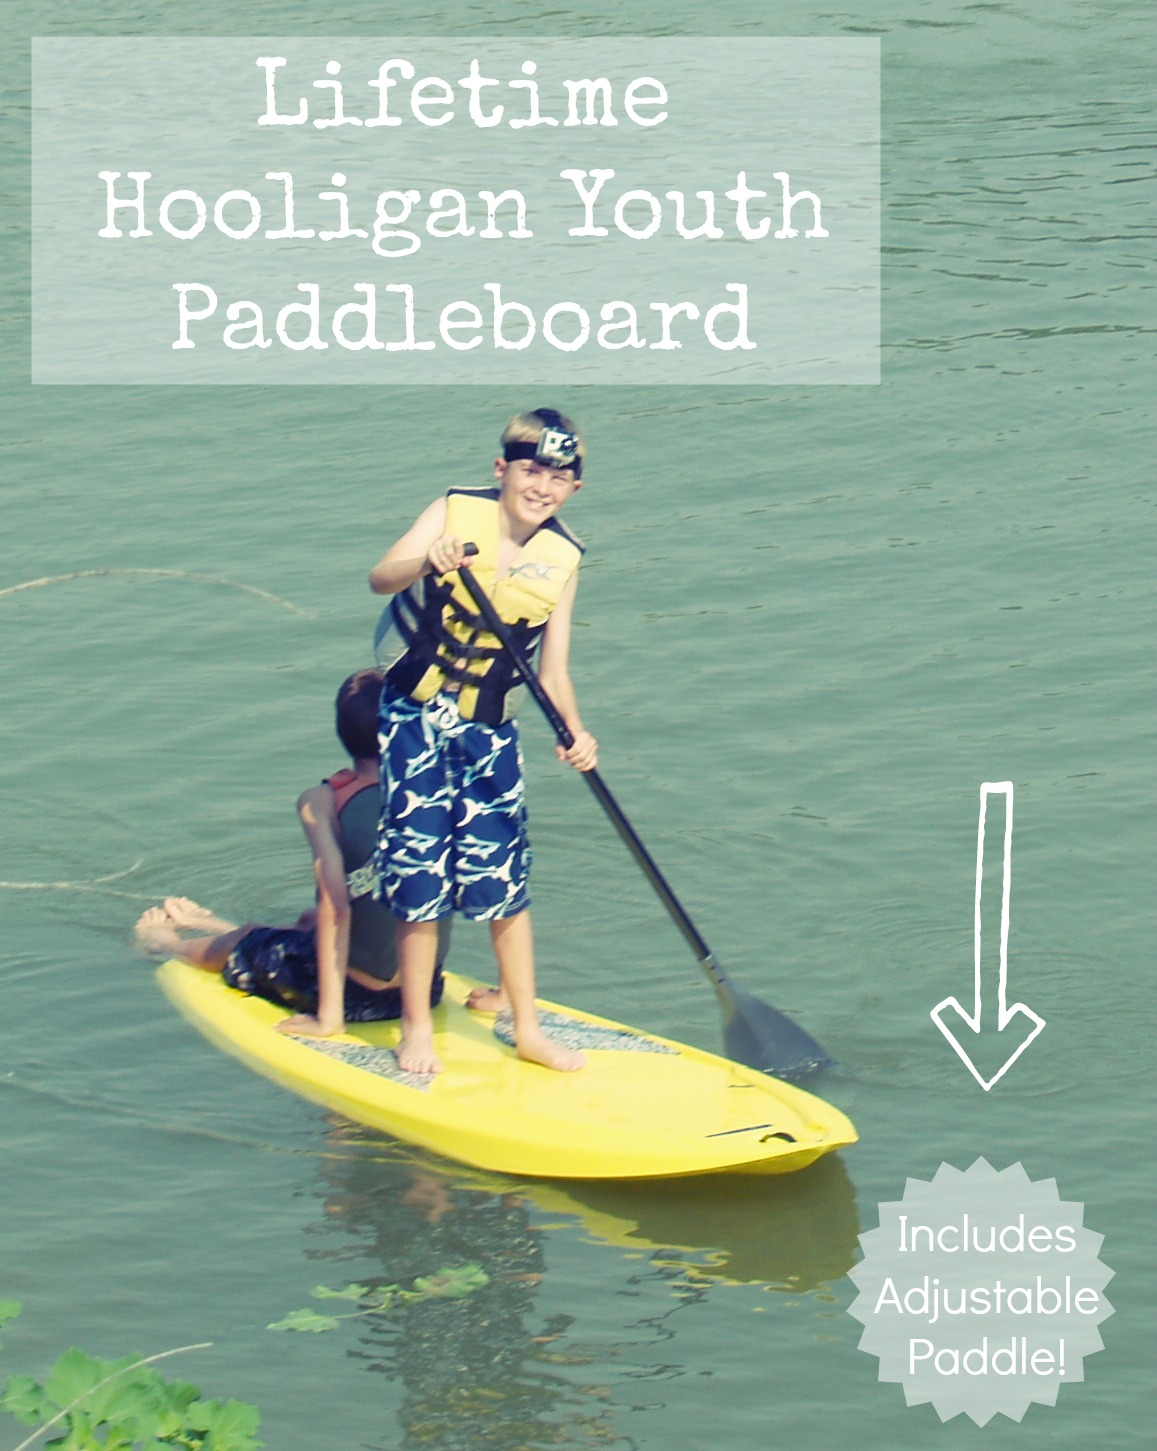 Youth Paddleboard GIVEAWAY From Lifetime